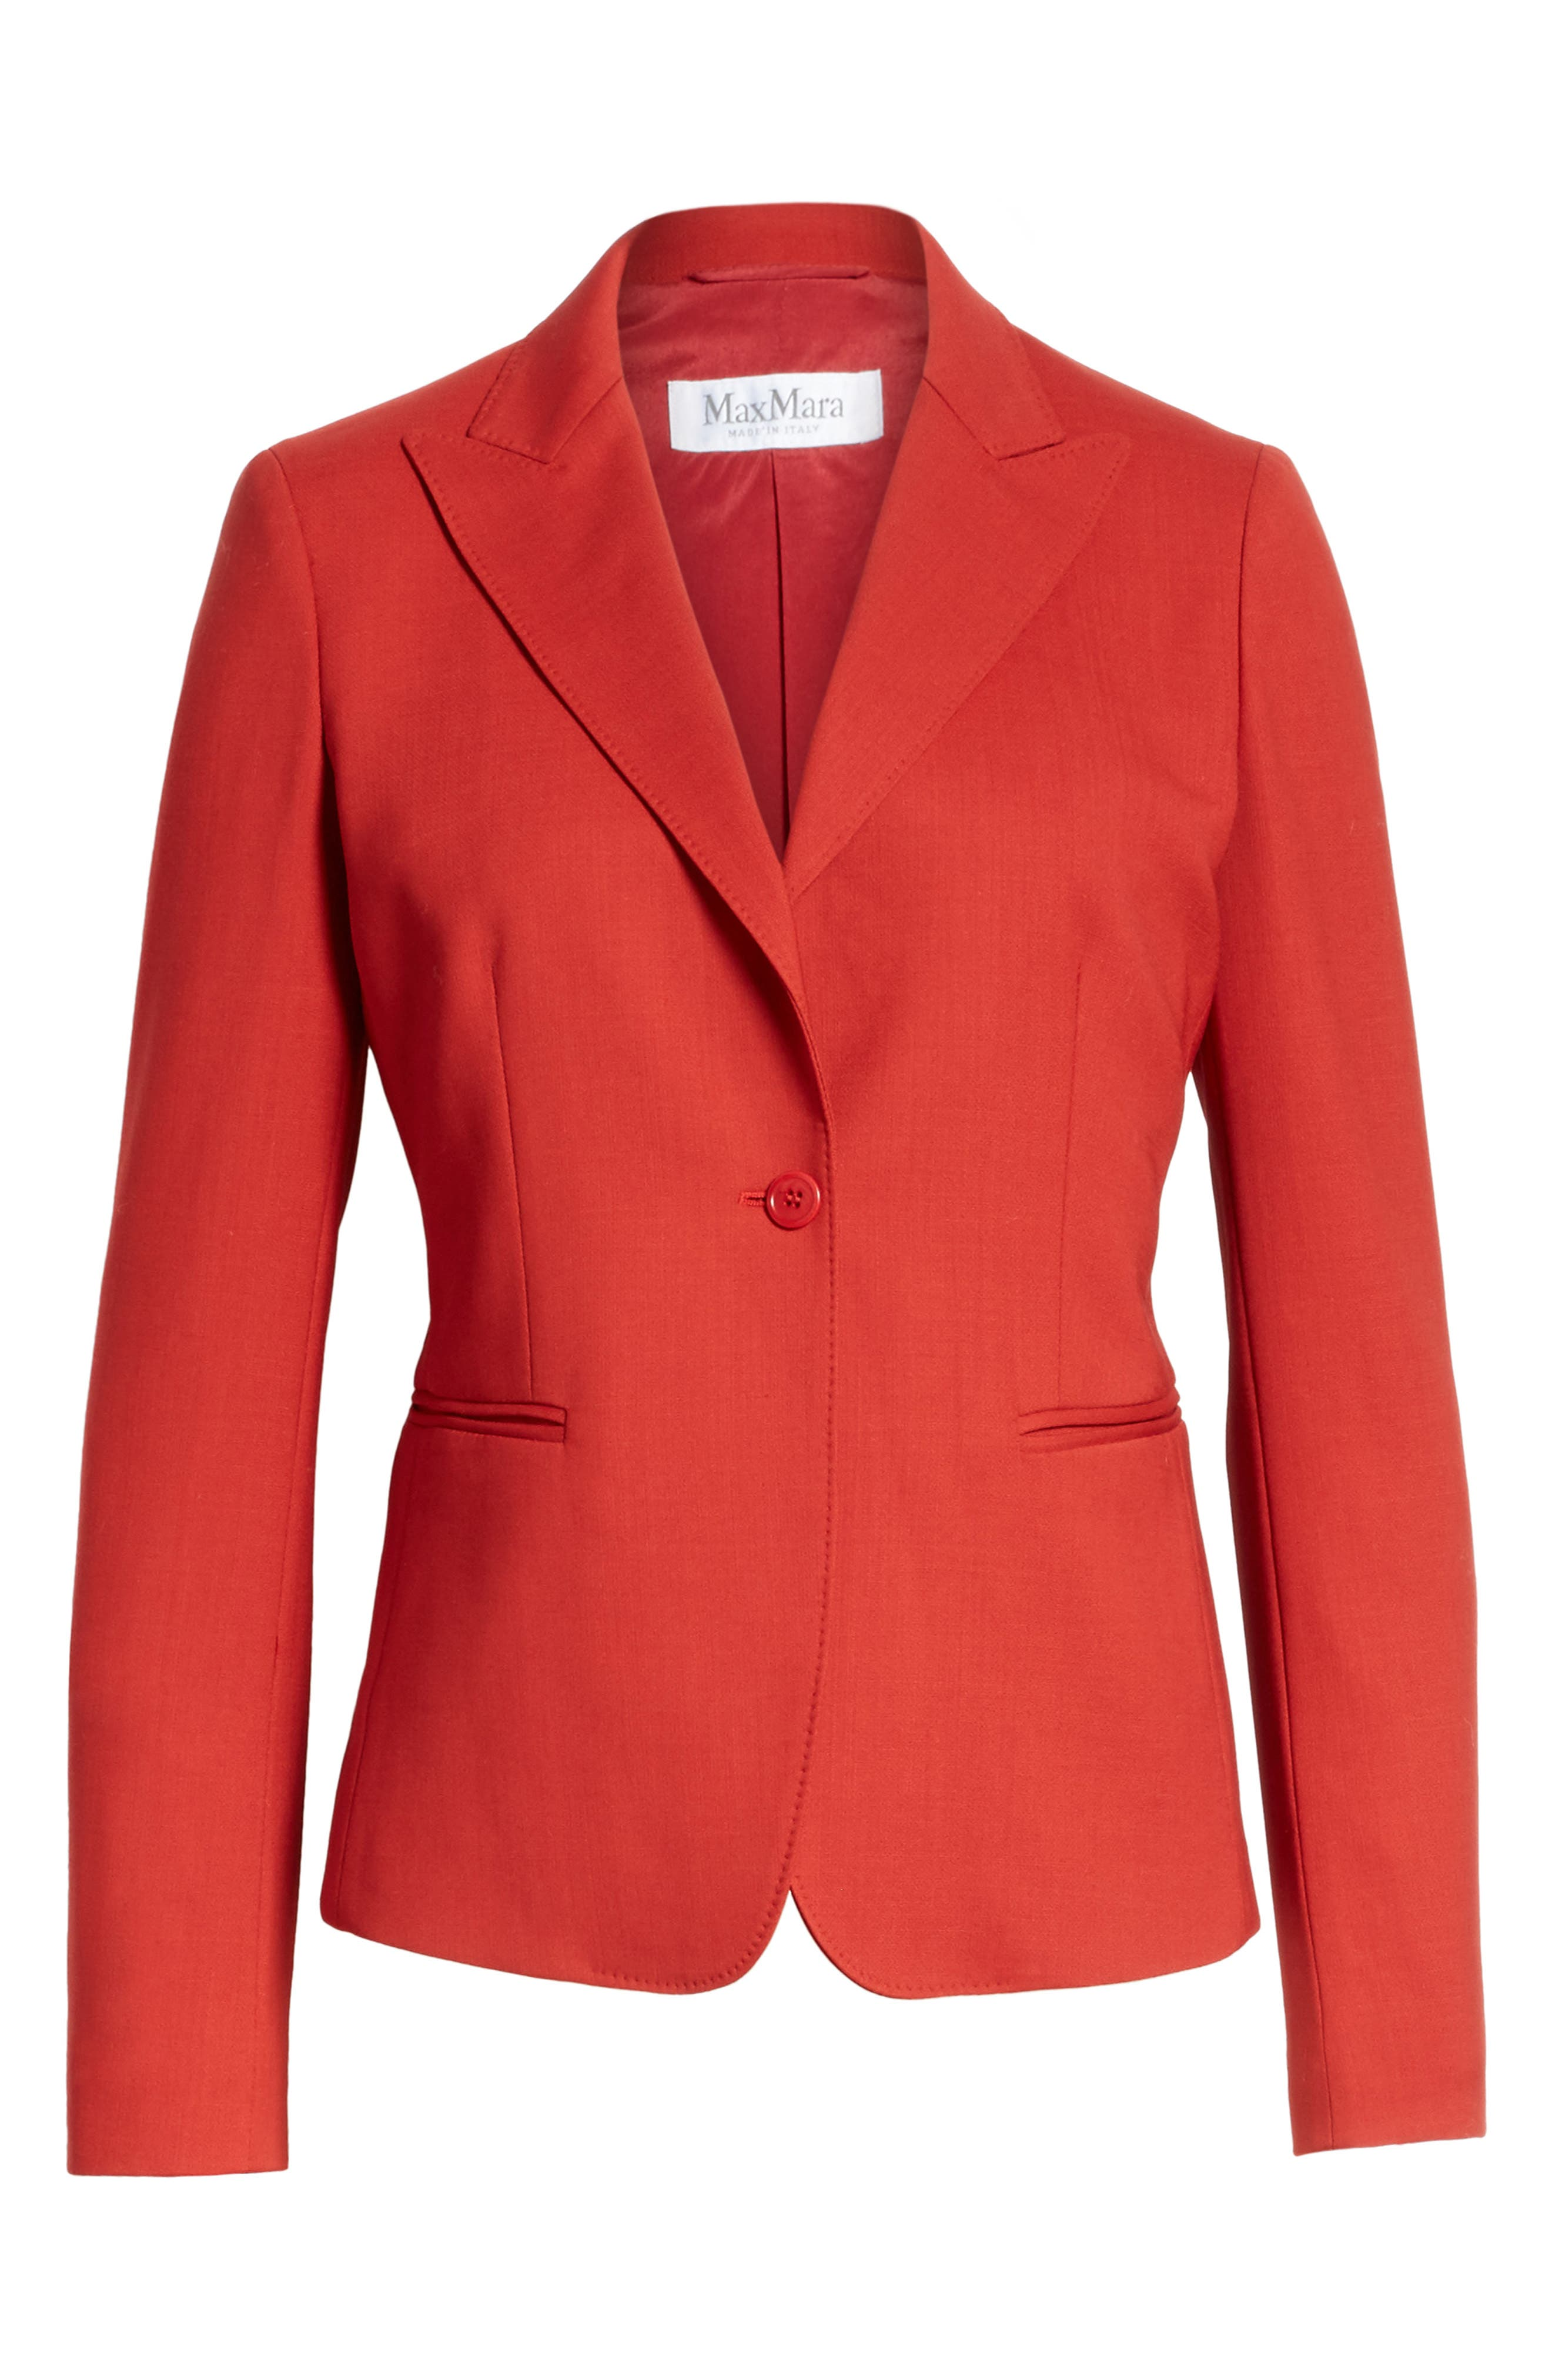 Umile Stretch Wool Jacket,                             Alternate thumbnail 5, color,                             614